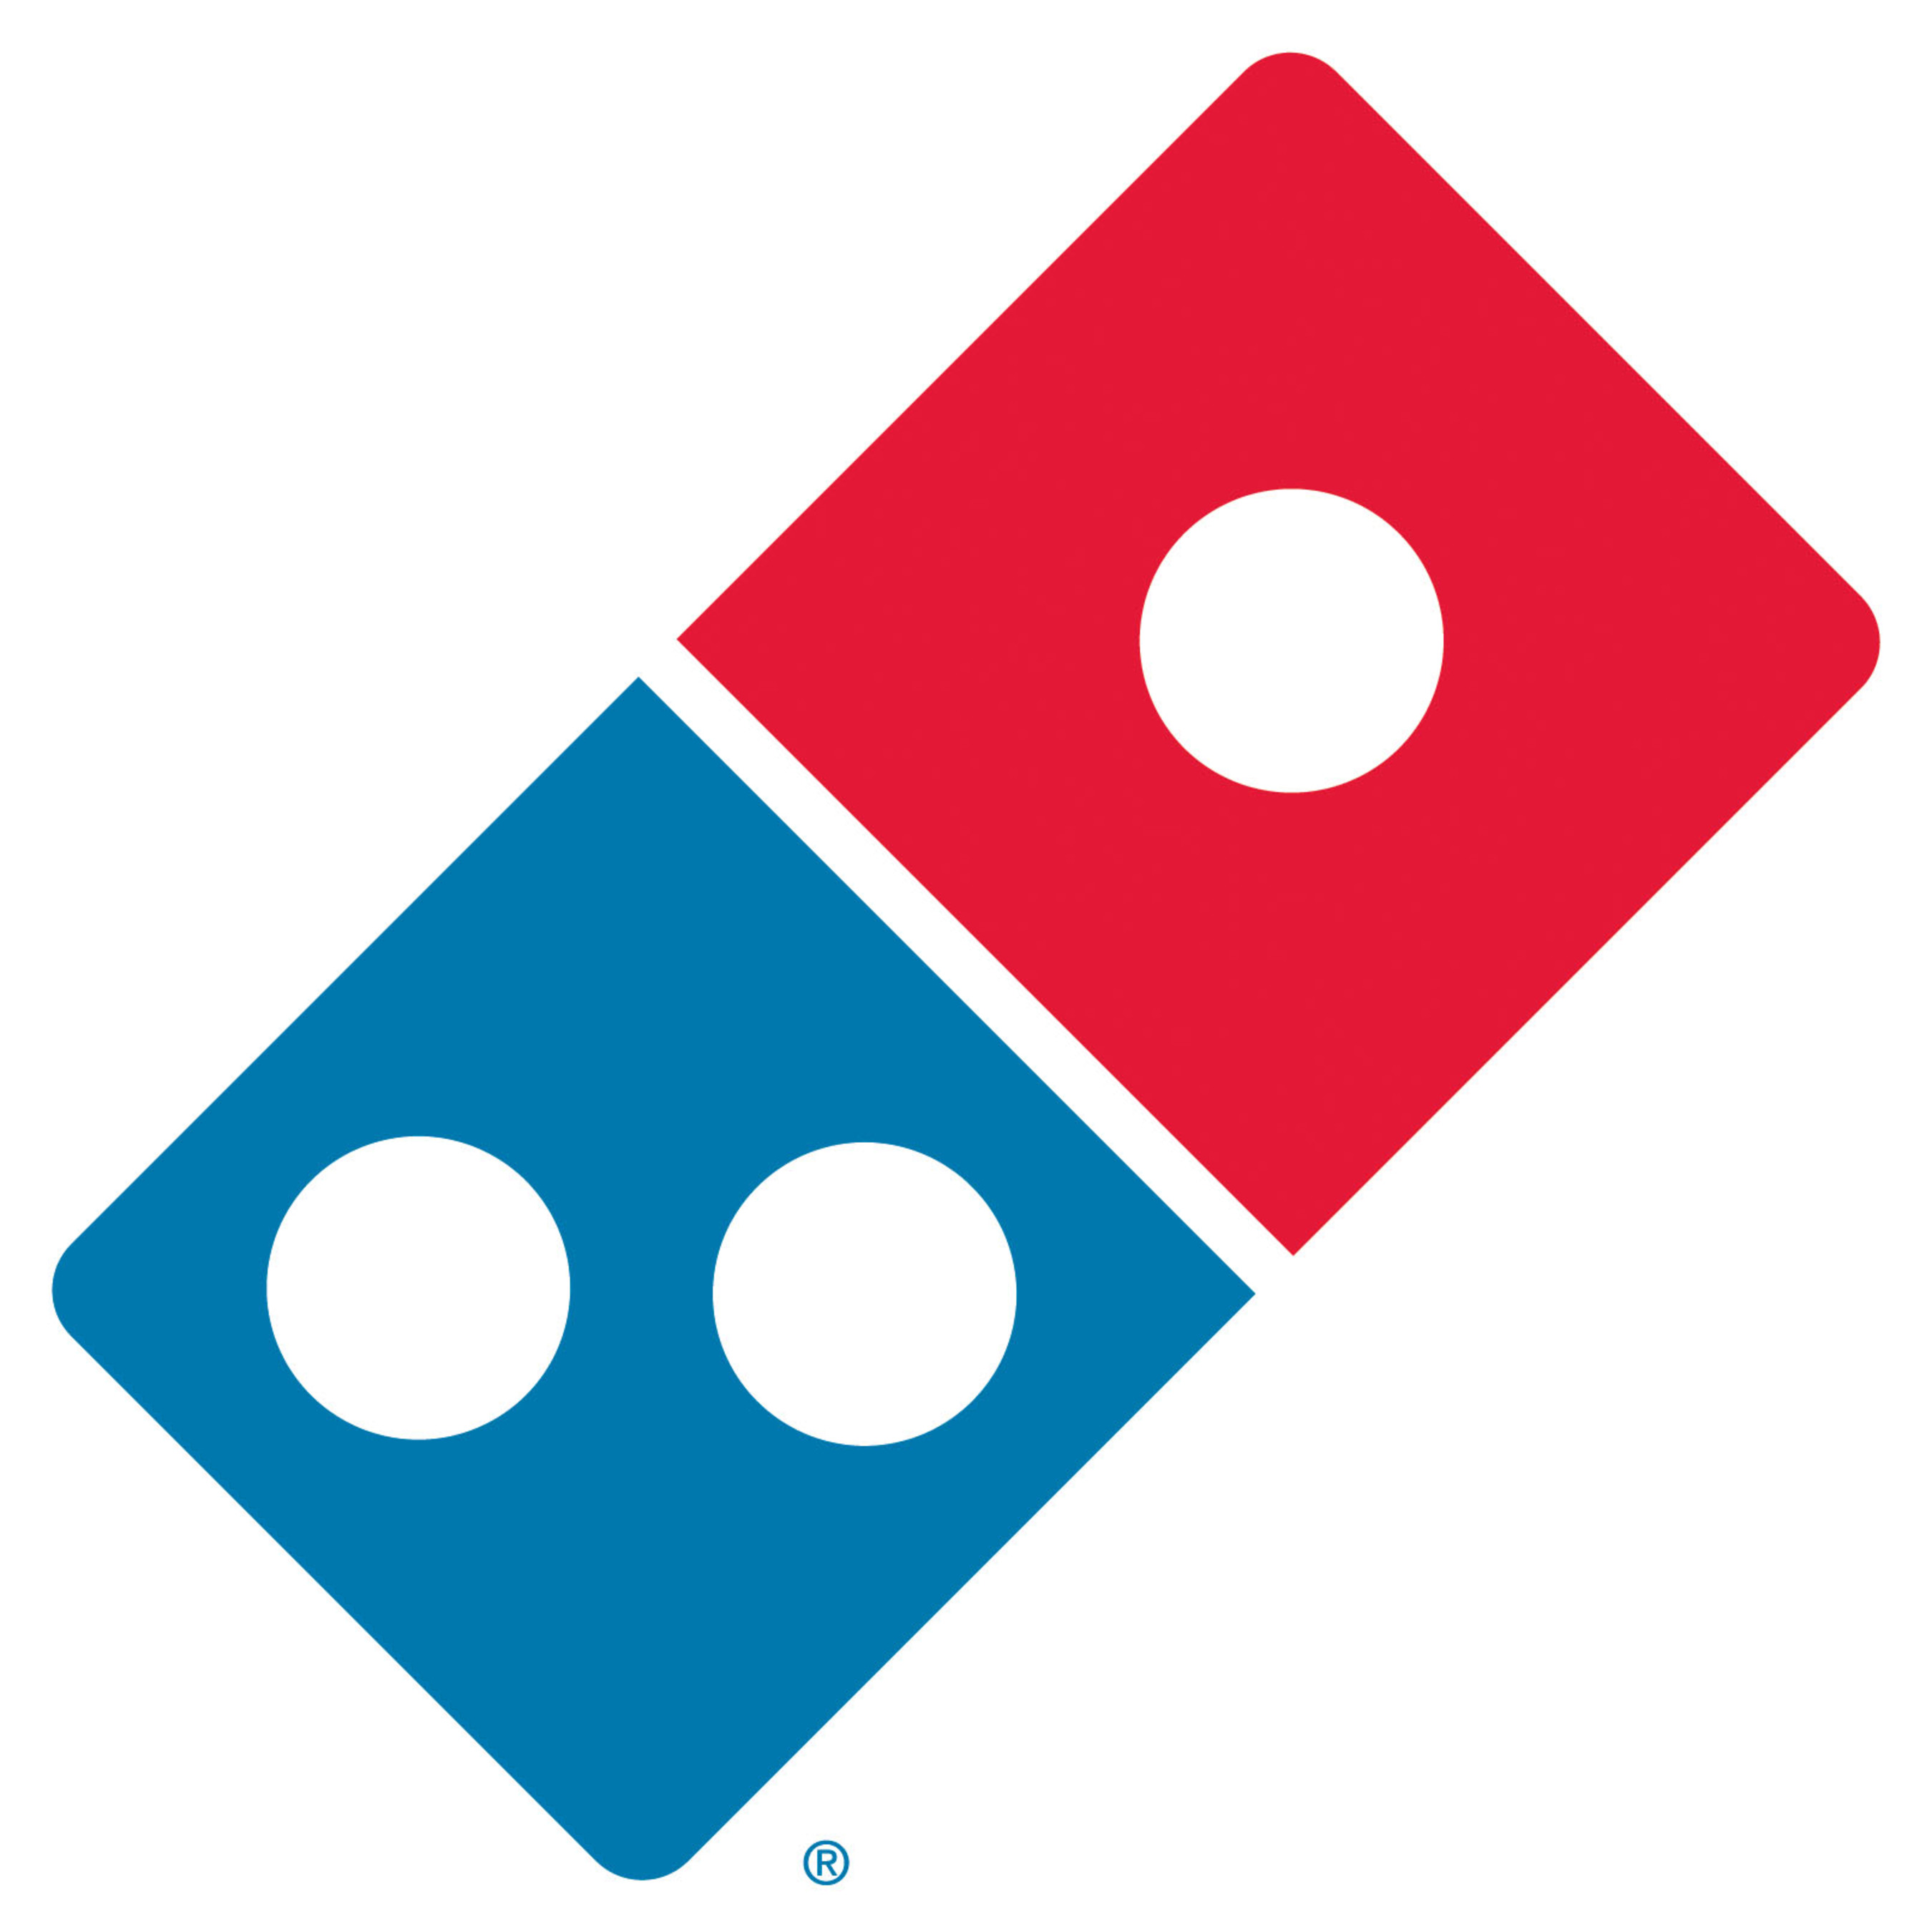 Domino's Pizza unveils new logo. Will be seen on all new stores and those undergoing major renovations